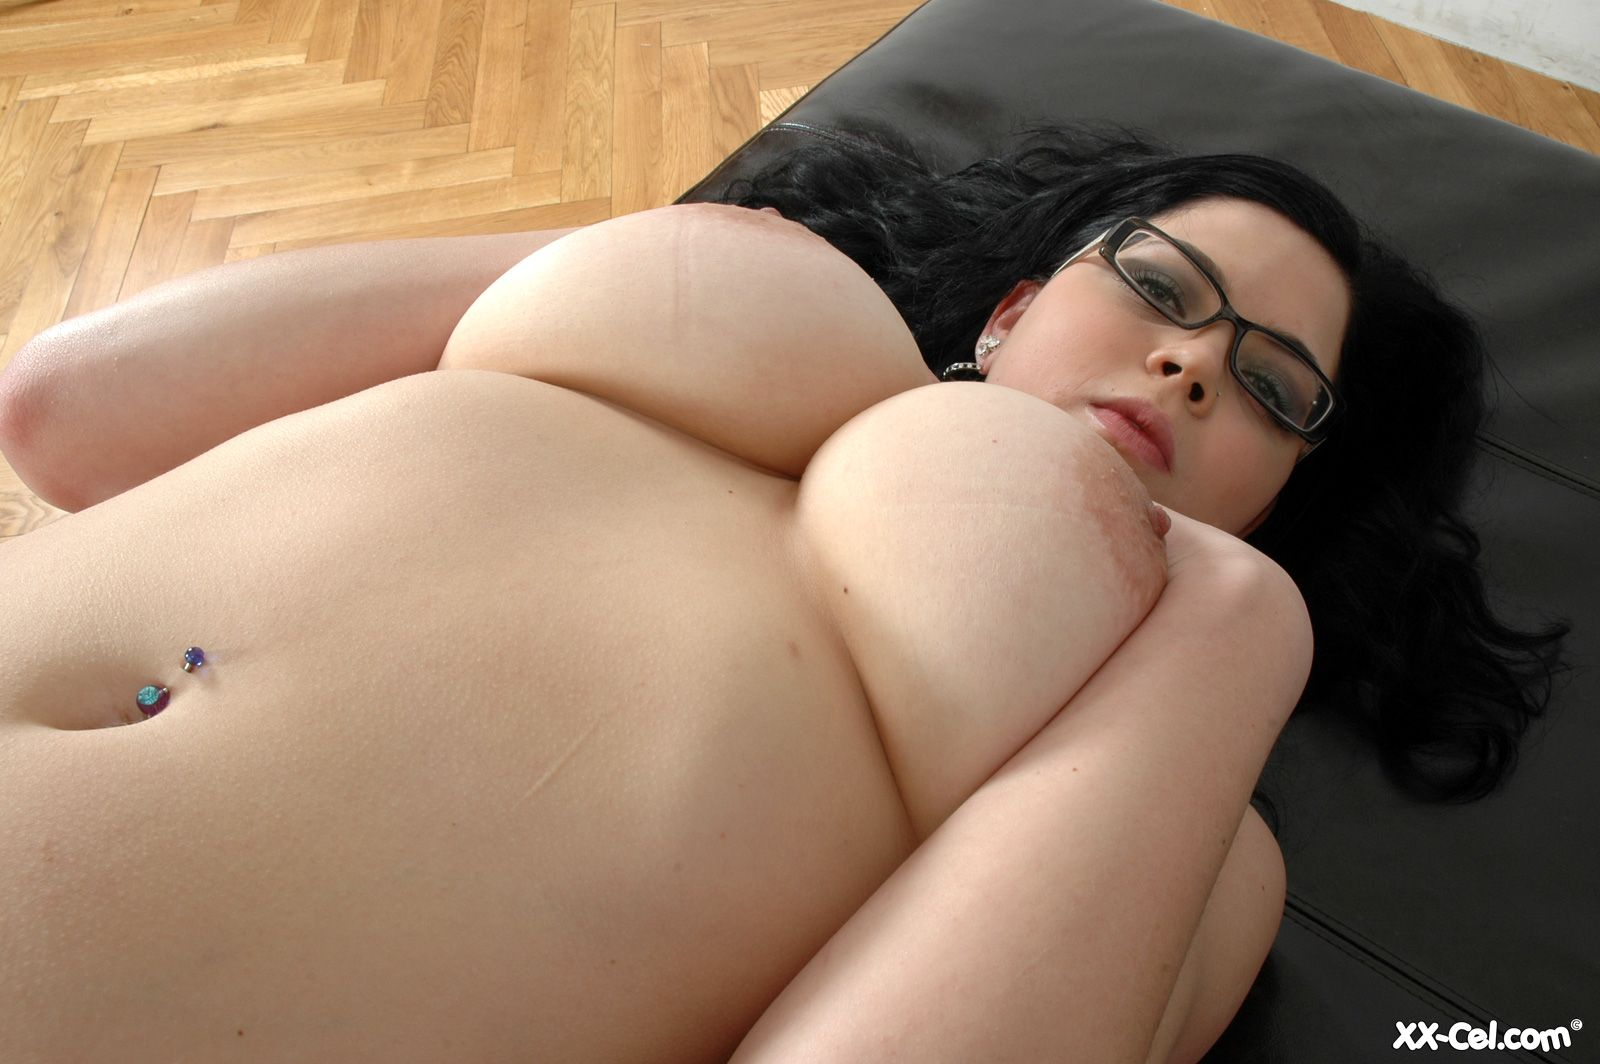 Apologise, sexy busty girls in glasses nude